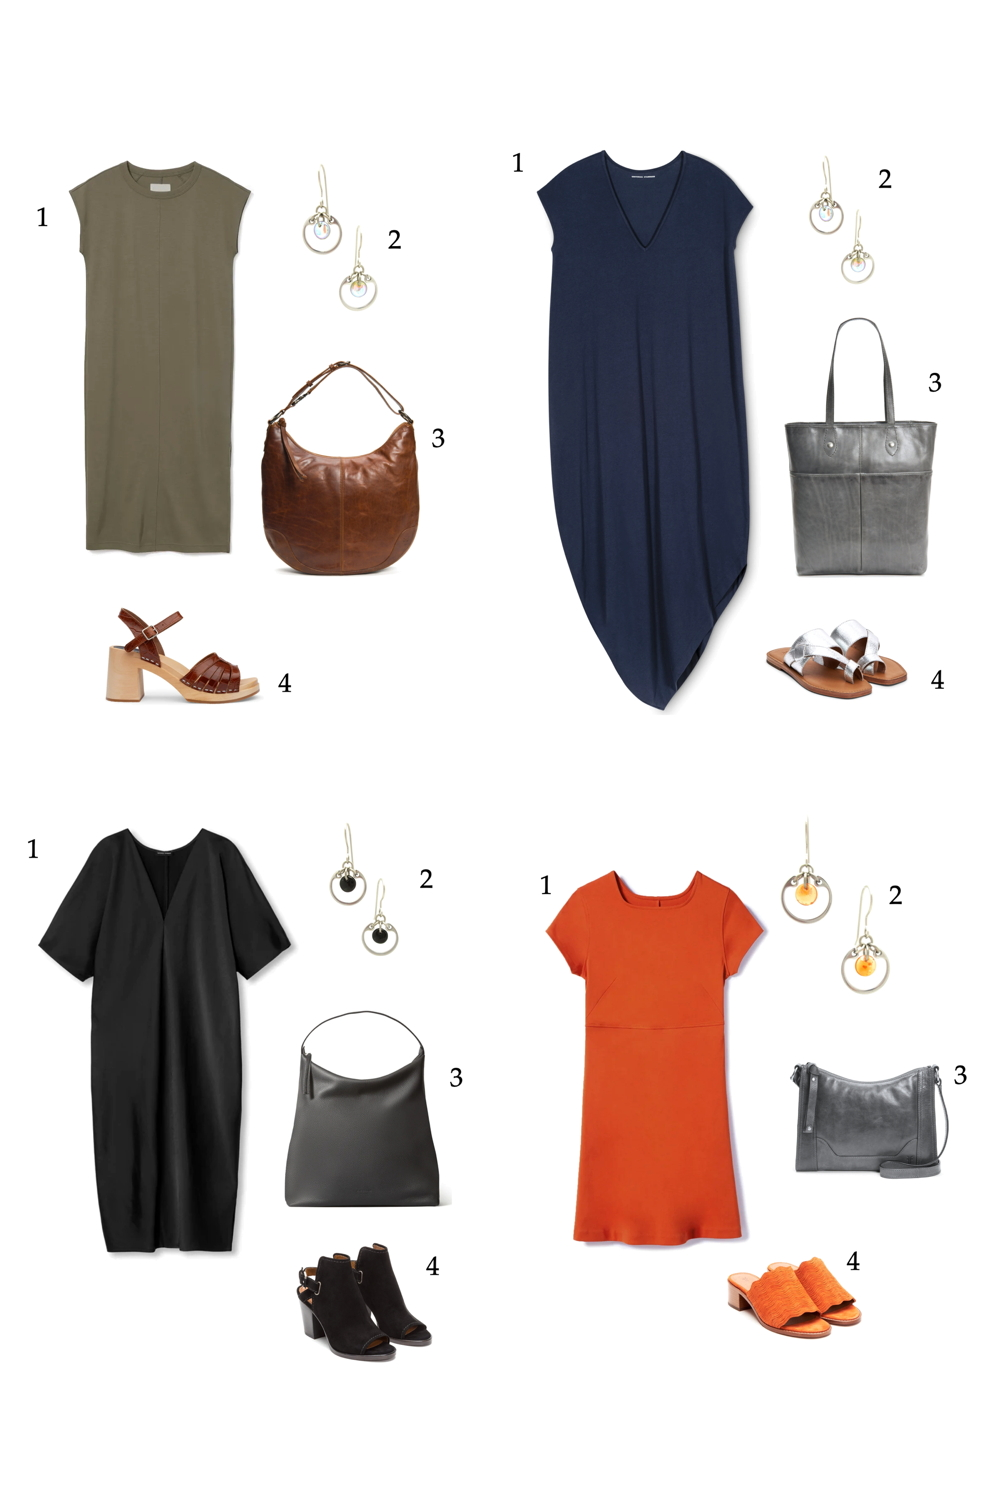 Compiled image of four easy casual but chic summer outfits featuring dresses, shoes, bags, and Wraptillion's modern small circle earrings